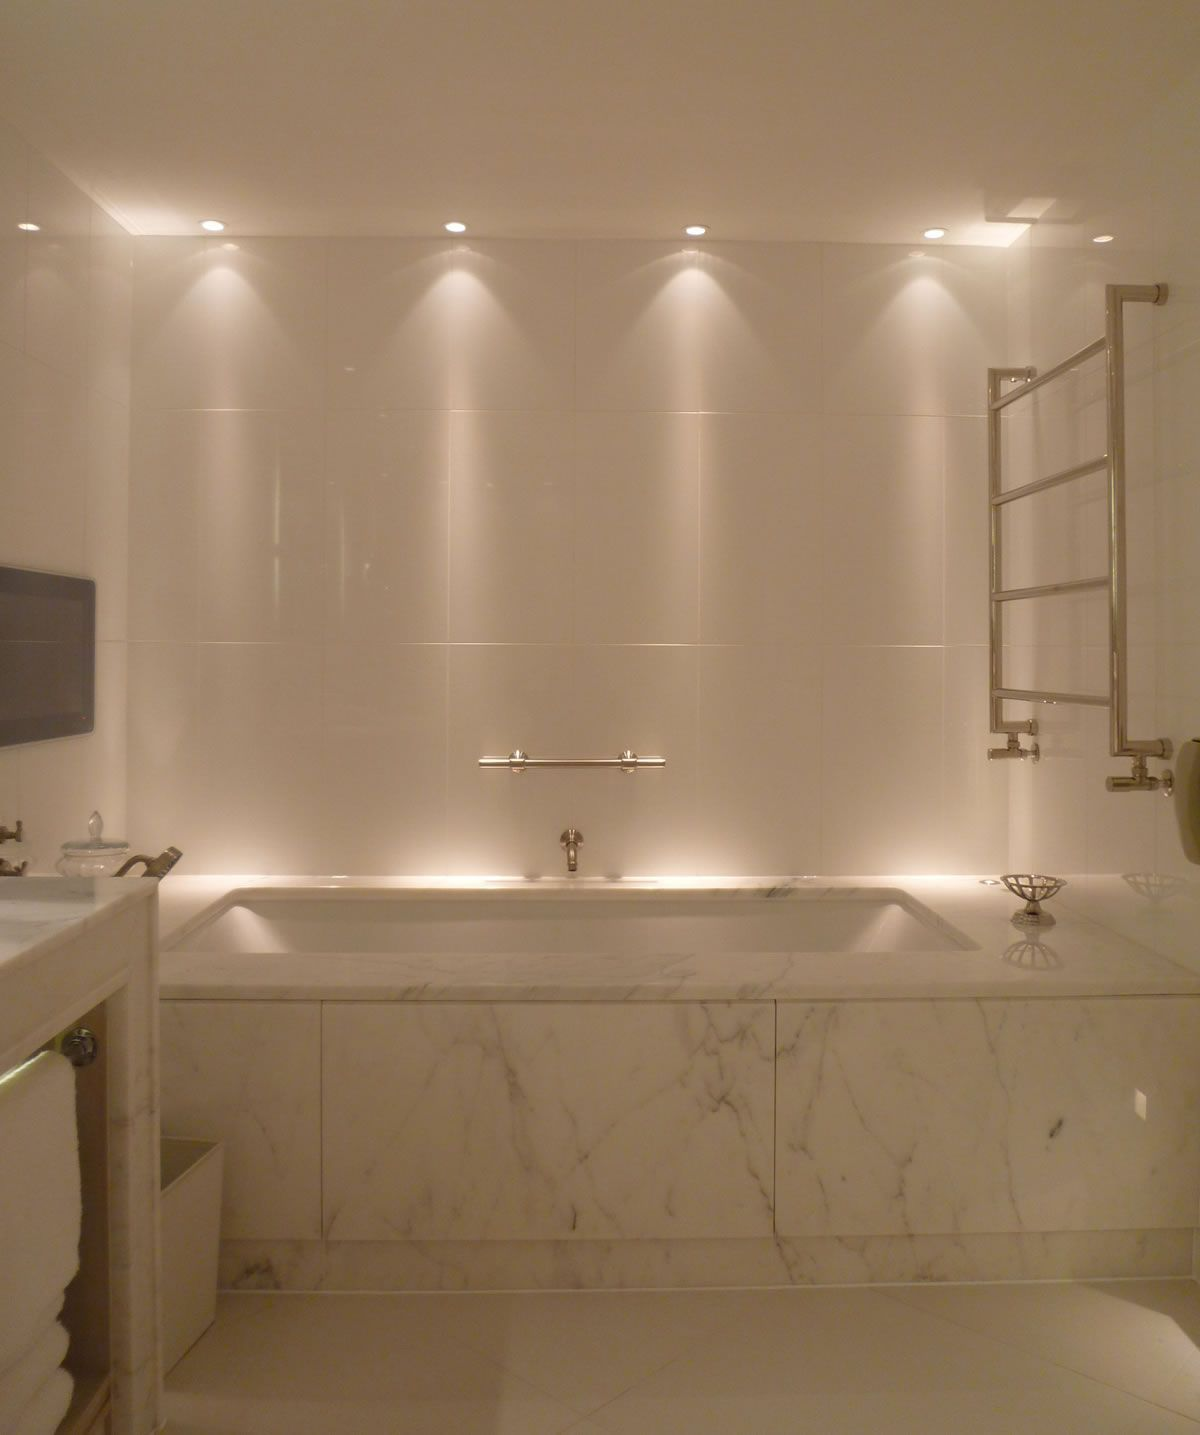 Baños Design Bathroom Lighting Ideas For Your Home Bathroom Lighting